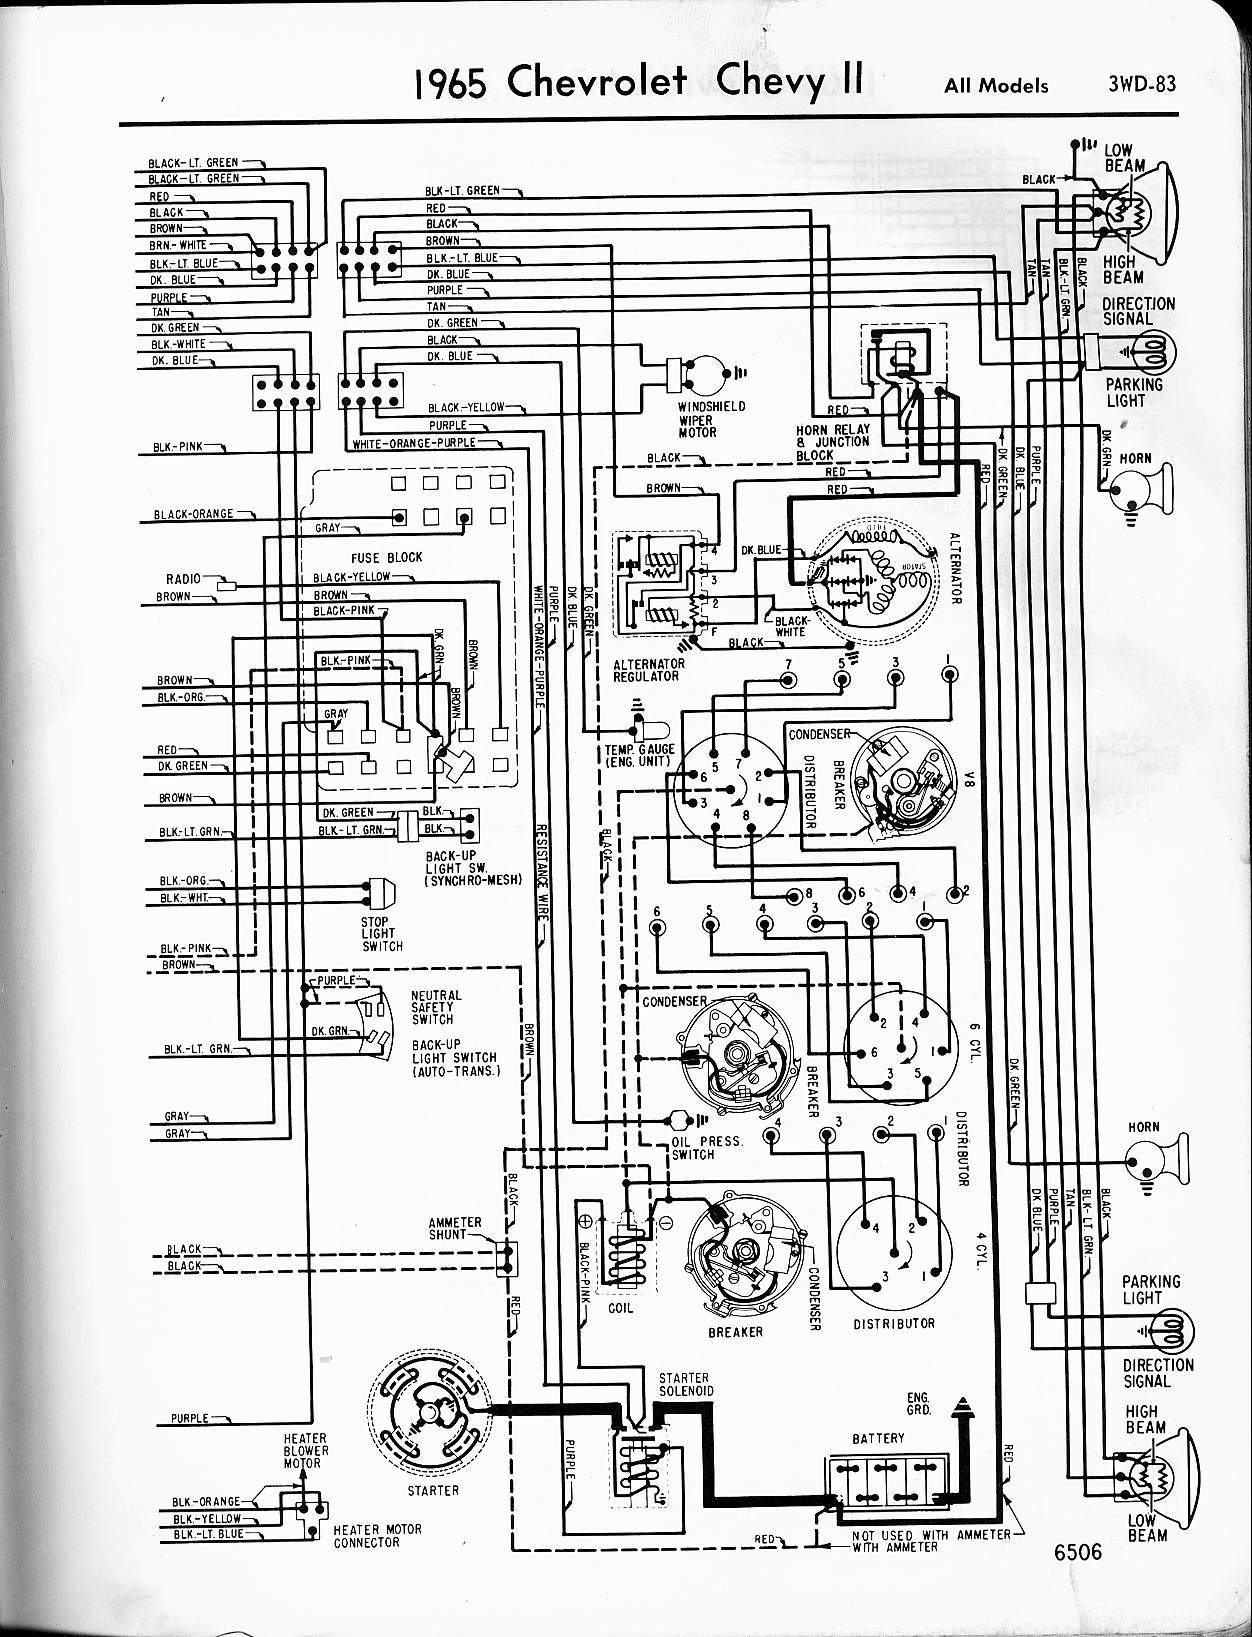 hight resolution of chevy diagrams 1970 corvette wiring diagram 1965 chevy ii wiring diagram figure a figure b